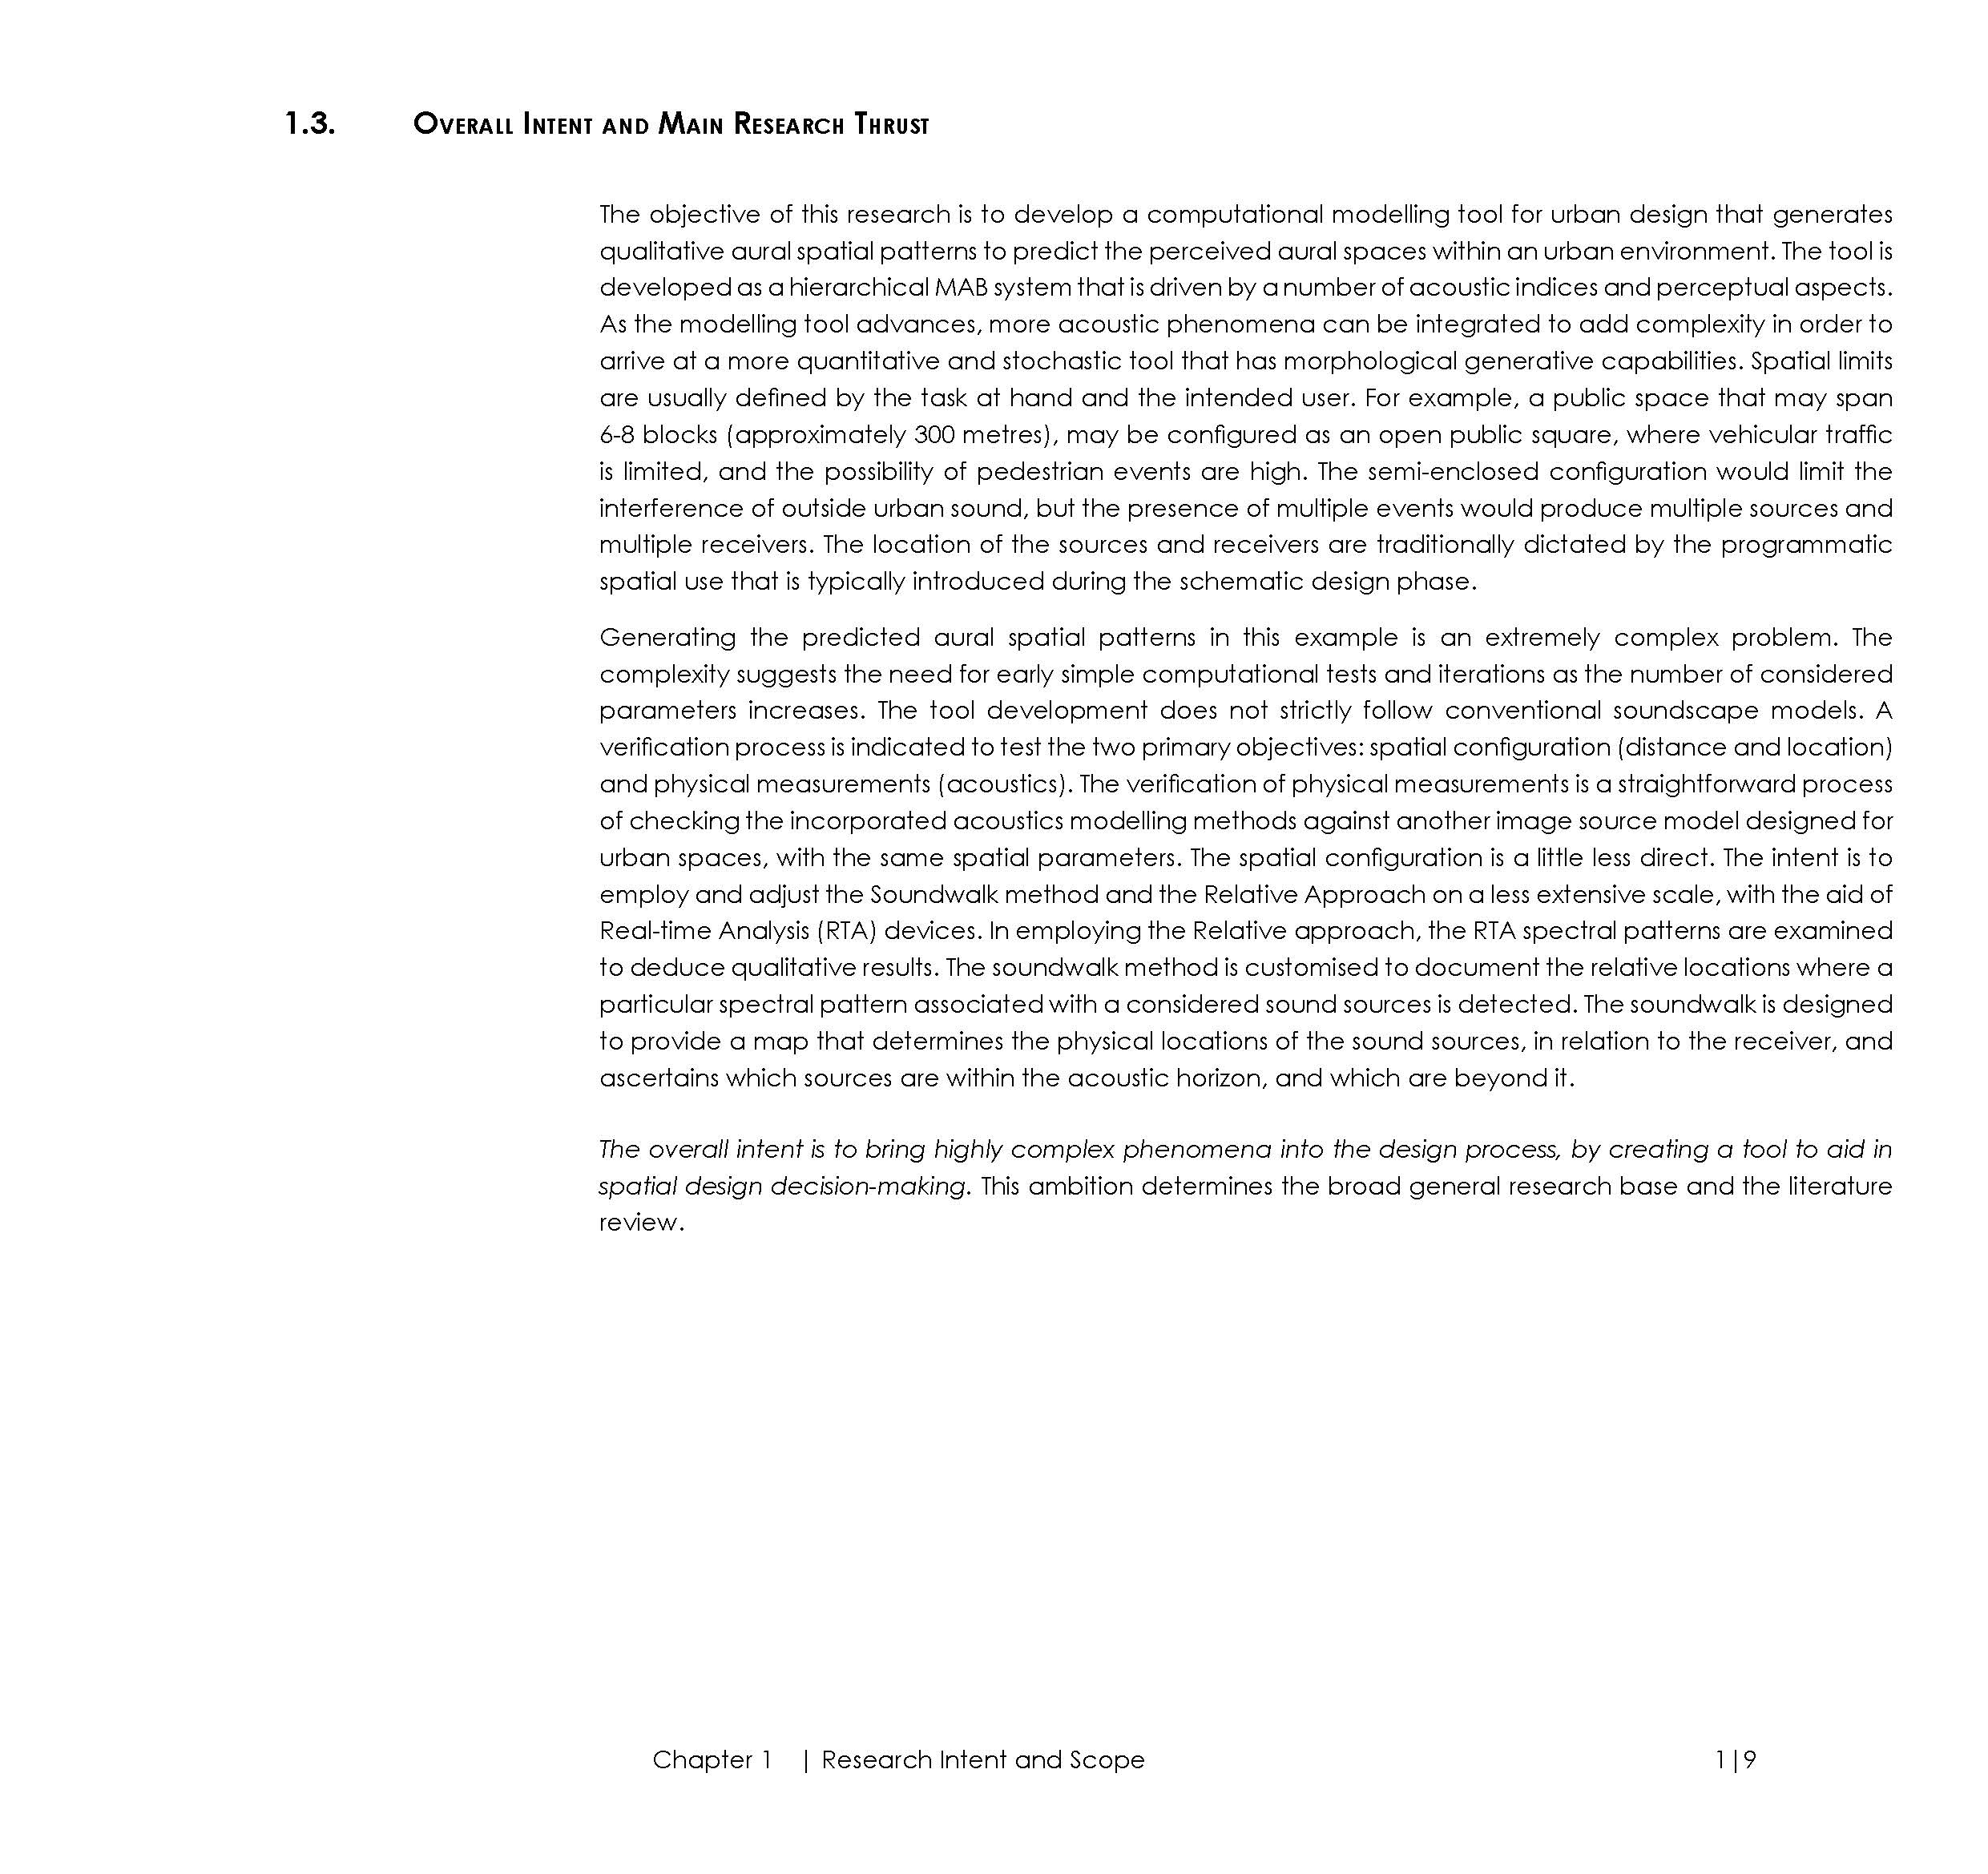 16.03.03_Thesis_01_Interactive_Page_045.jpg